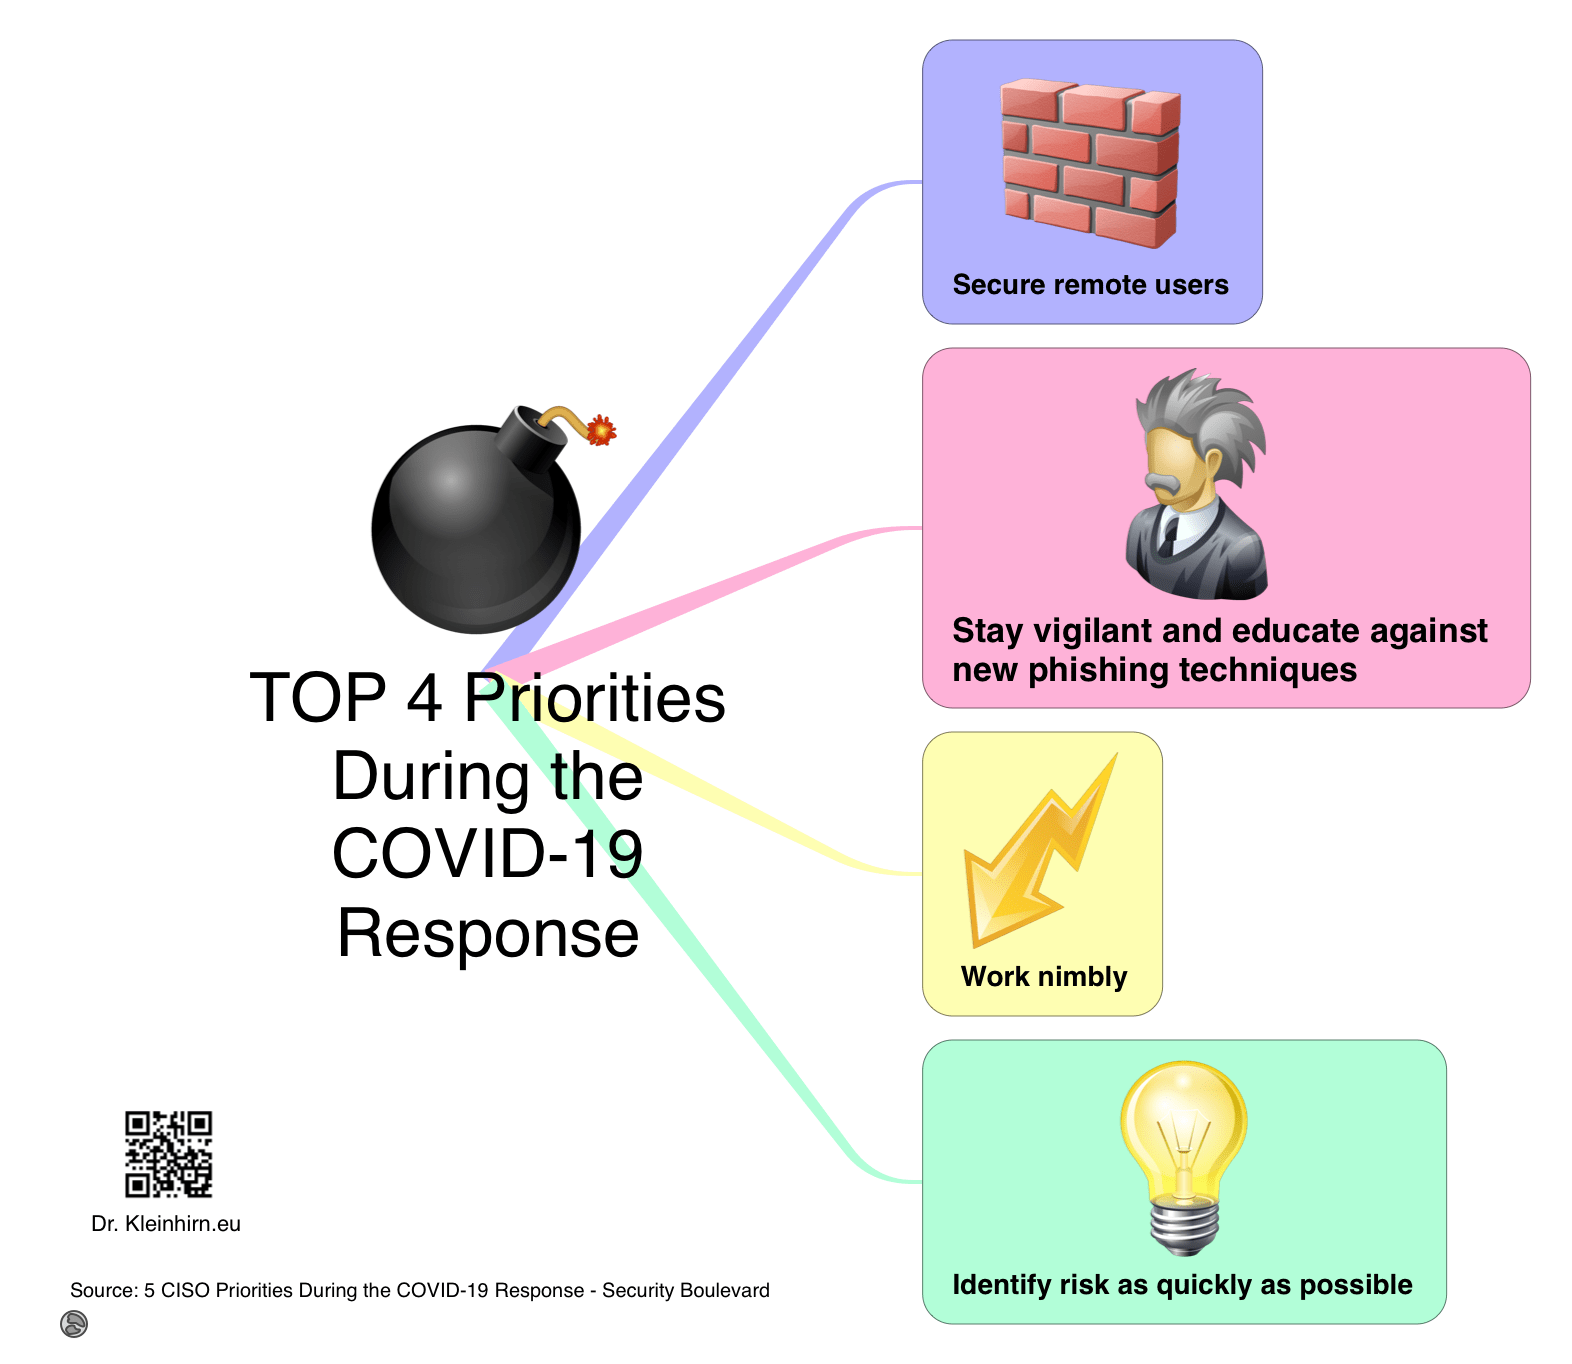 TOP 4 Priorities During the COVID-19 Response